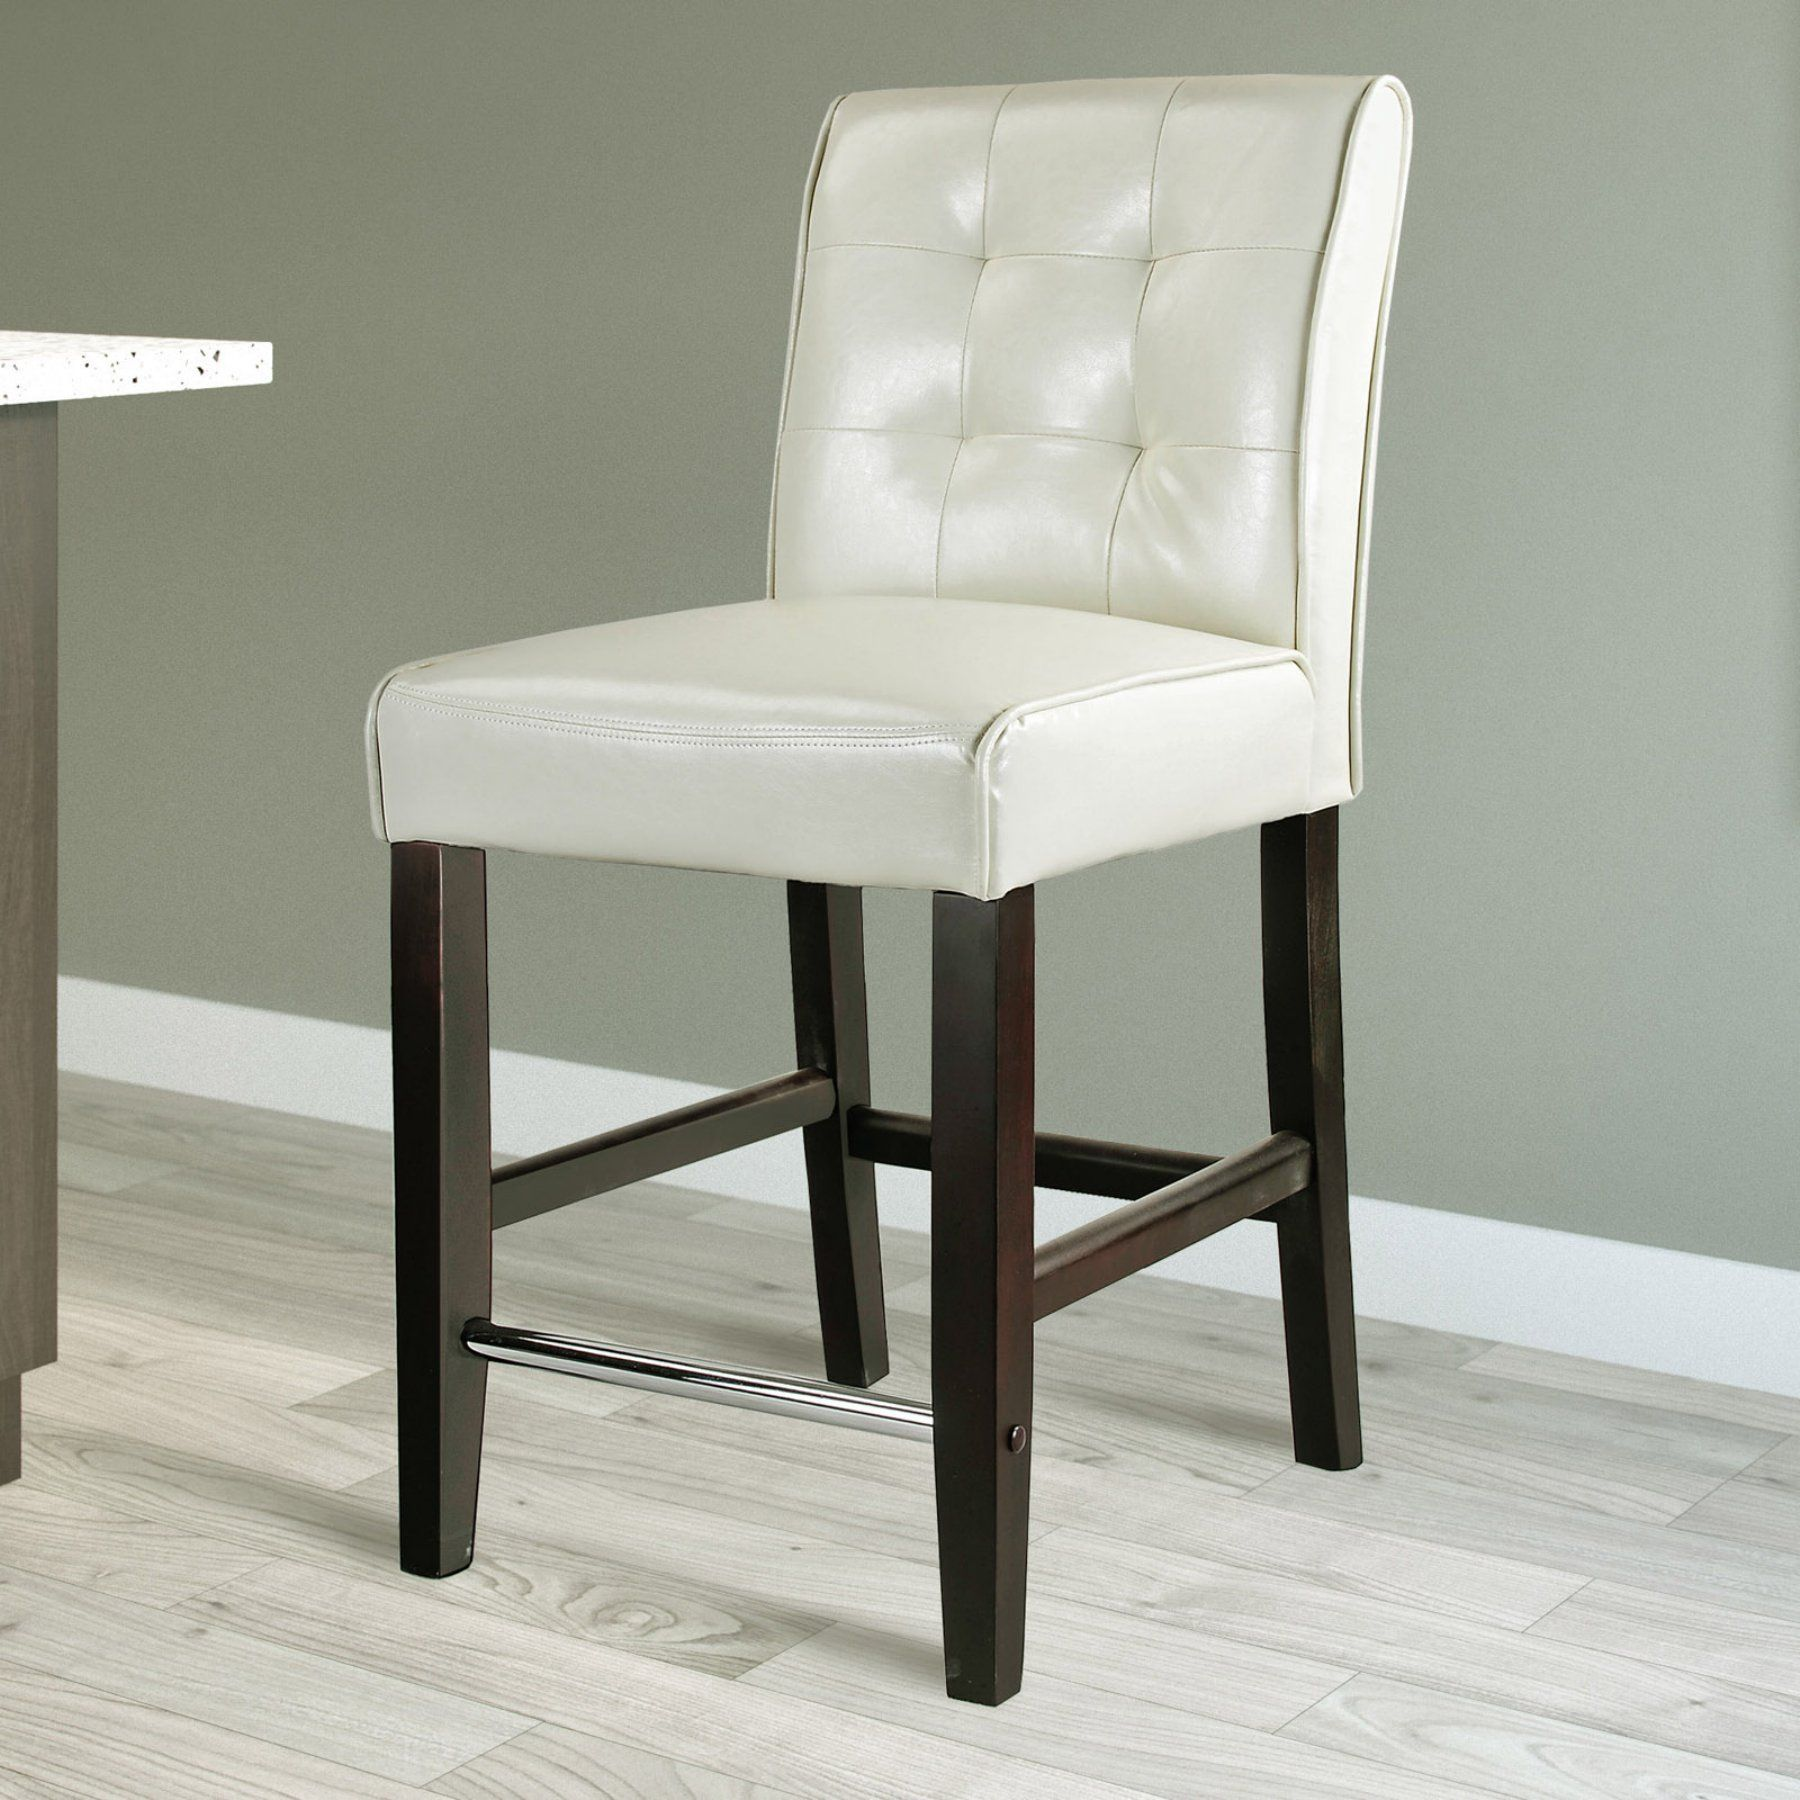 Magnificent Corliving Antonio Tufted Back Counter Height Stool Cream Bralicious Painted Fabric Chair Ideas Braliciousco